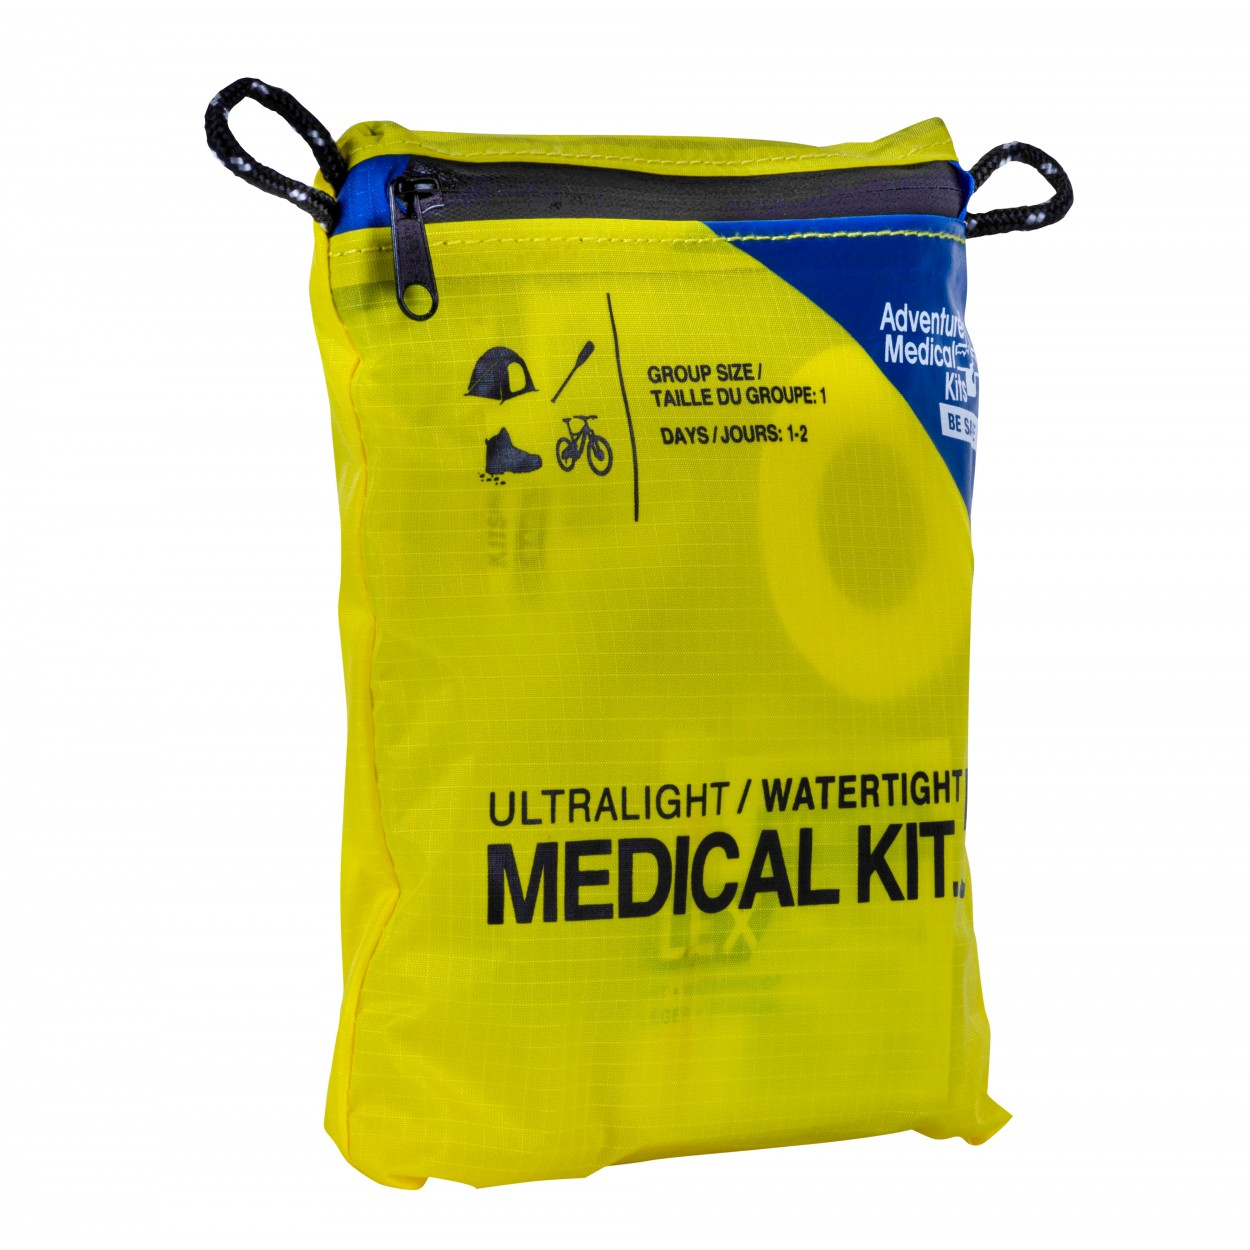 AMK Ultralight / Watertight .5 Medical Kit